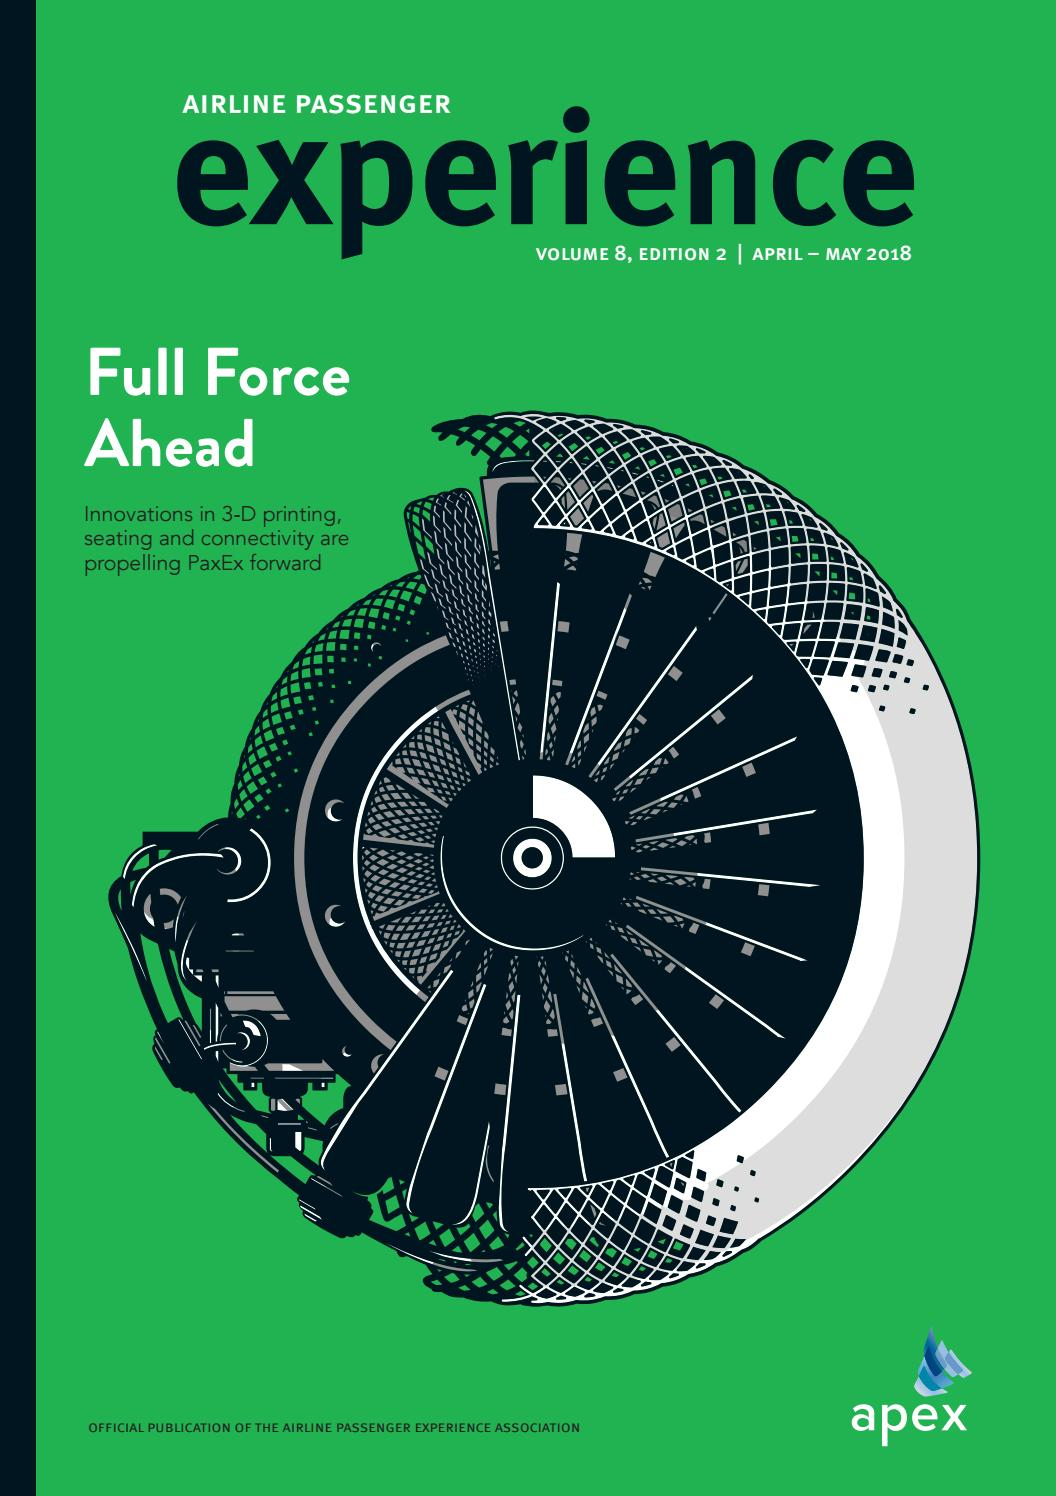 APEX Experience 8 2 April / May 2018 by Spafax - issuu